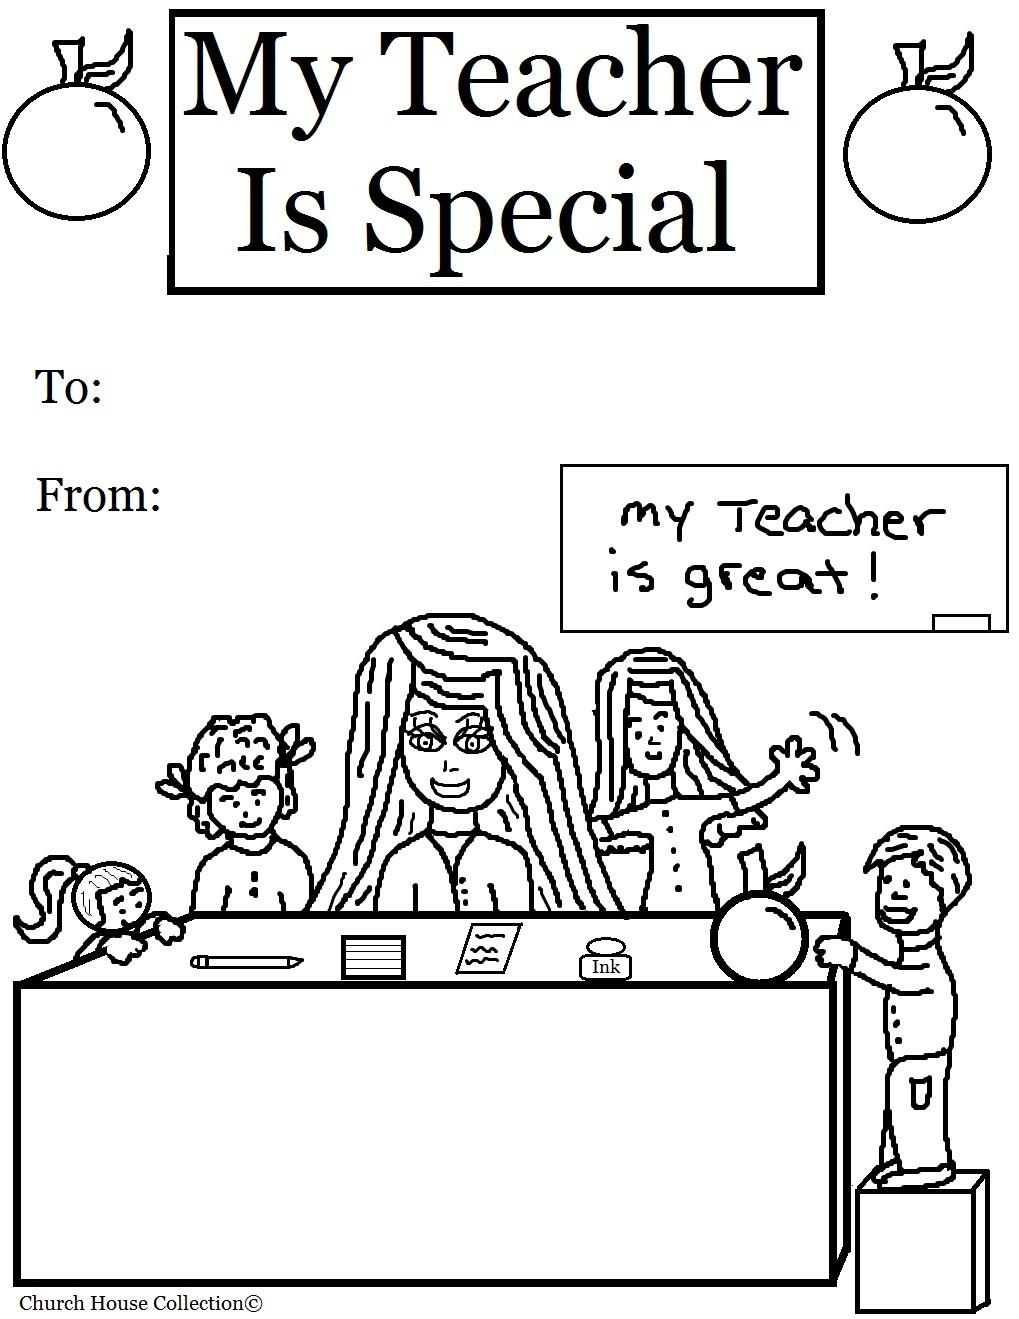 graphic relating to Free Printable Teacher Appreciation Cards to Color referred to as Instructor Coloring Web pages - Easiest Coloring Web pages For Children